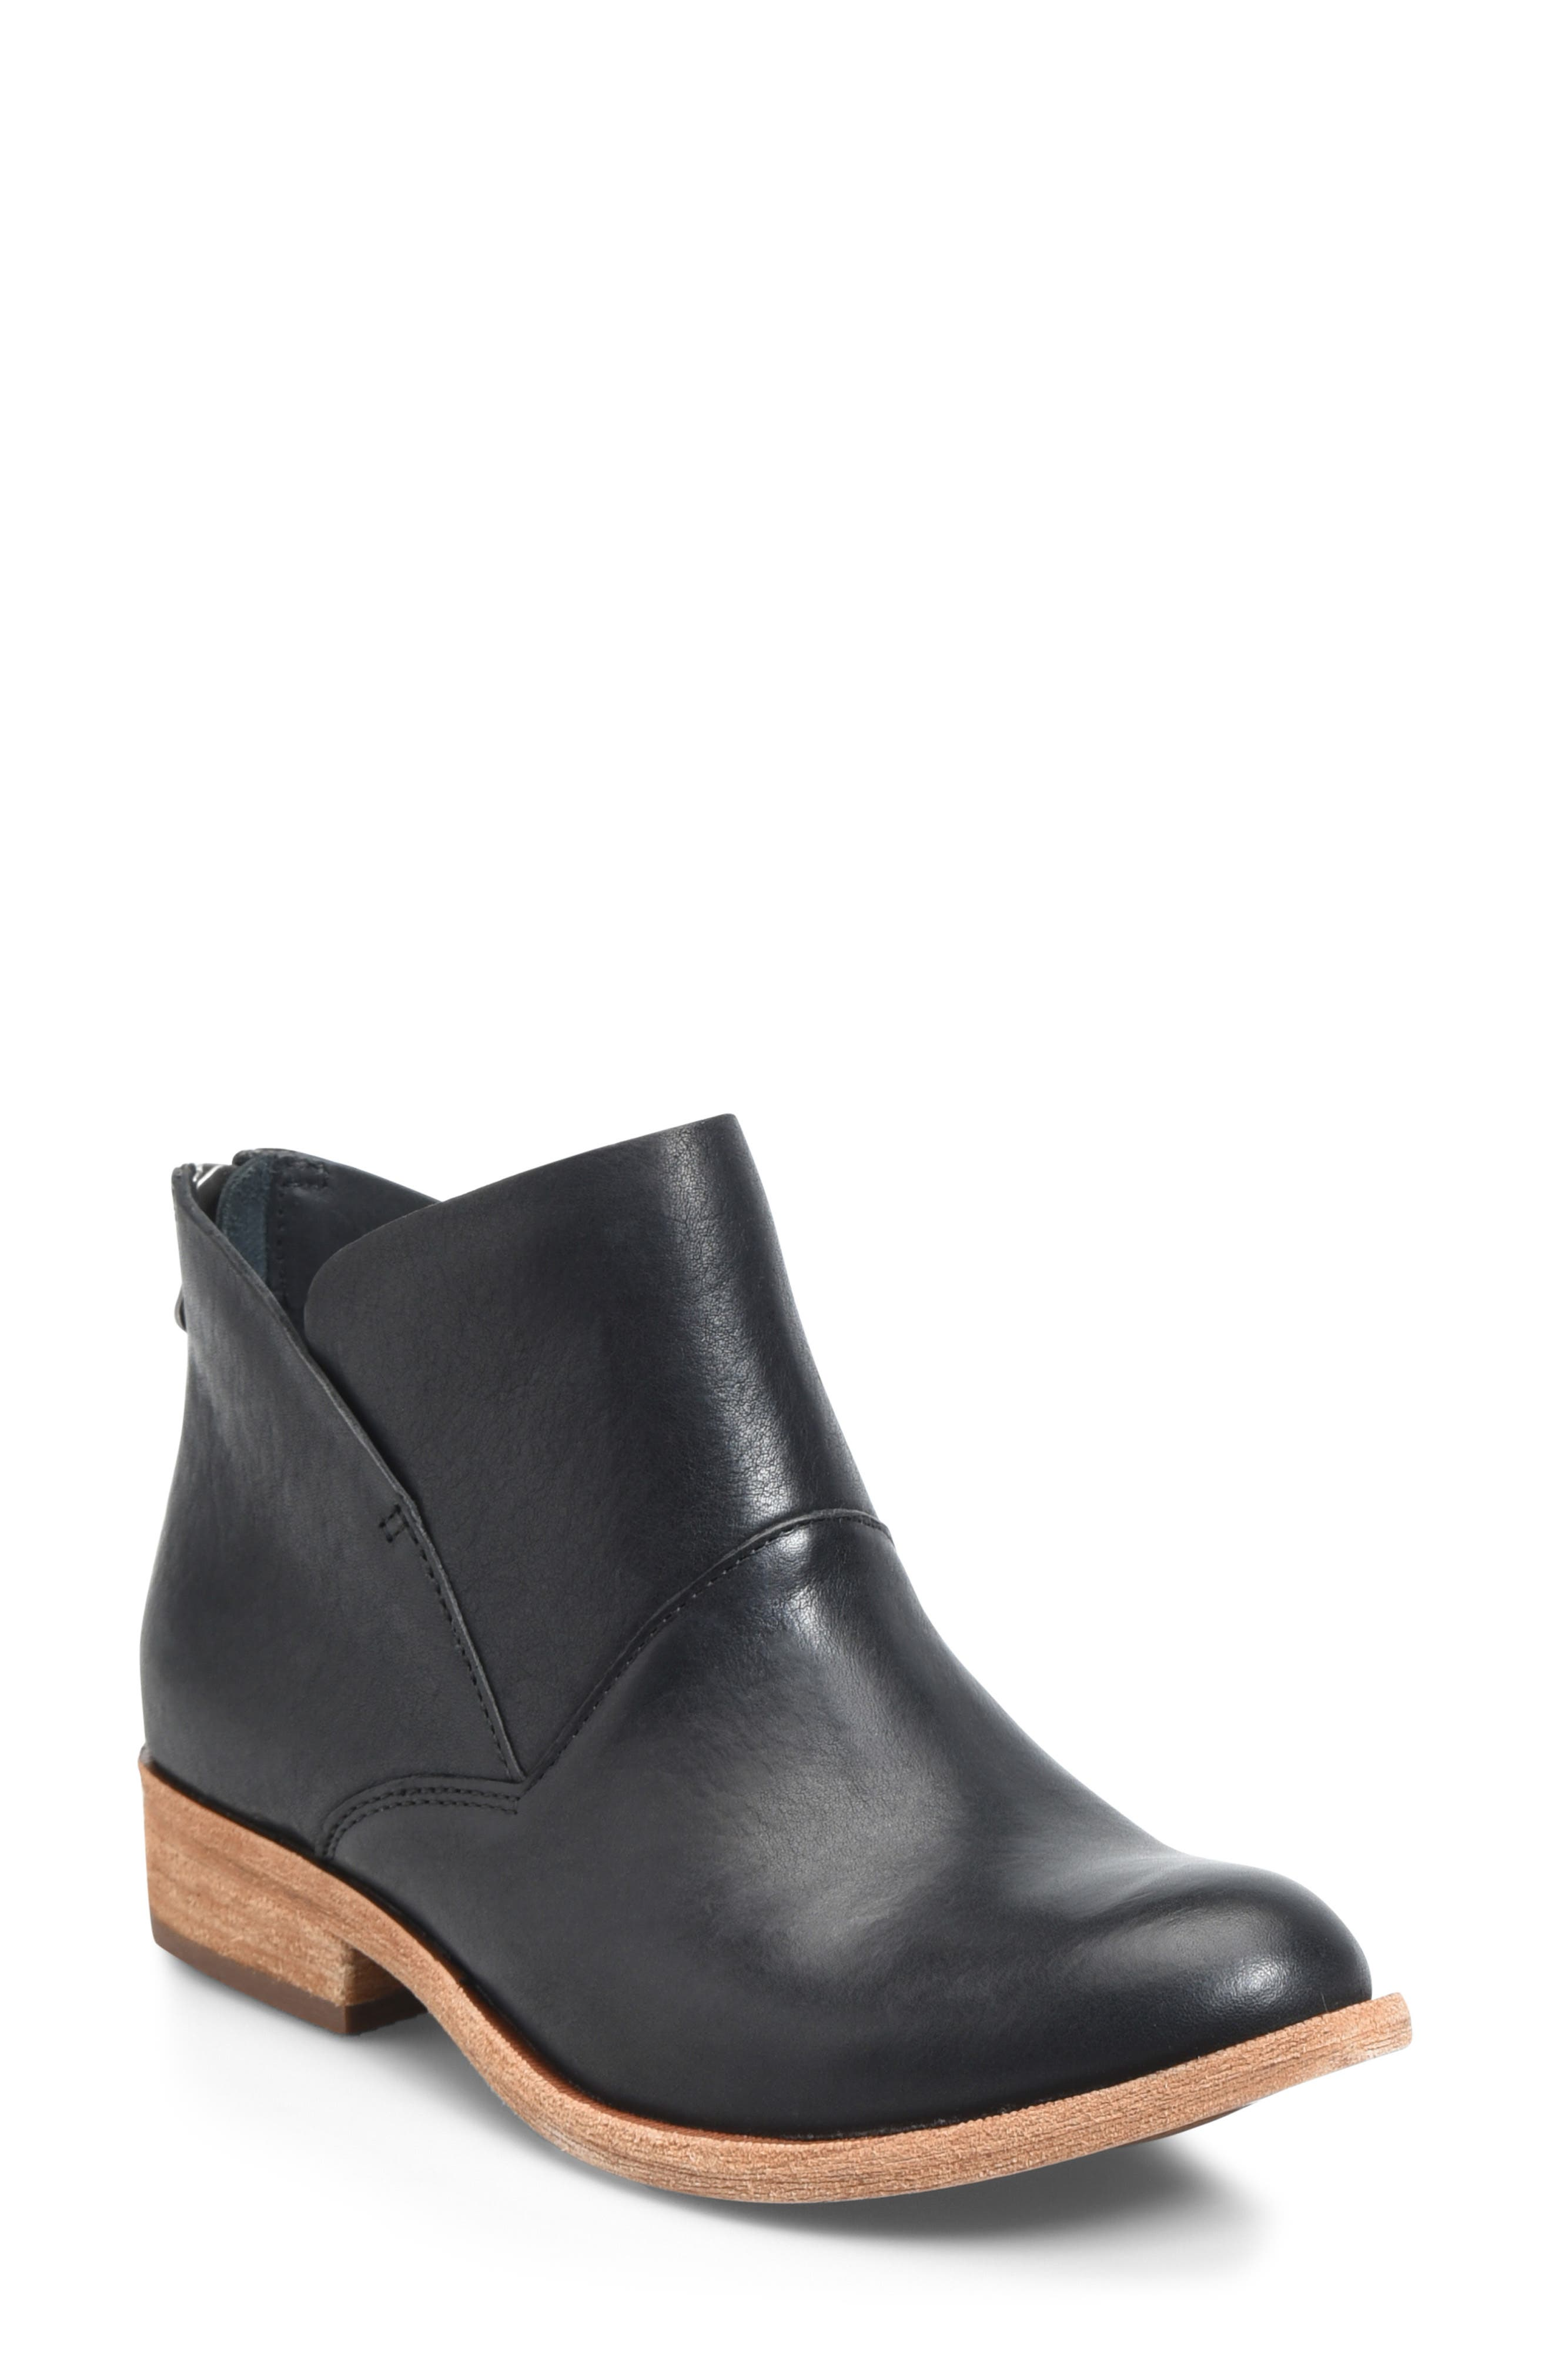 Ryder Ankle Boot,                         Main,                         color, BLACK LEATHER